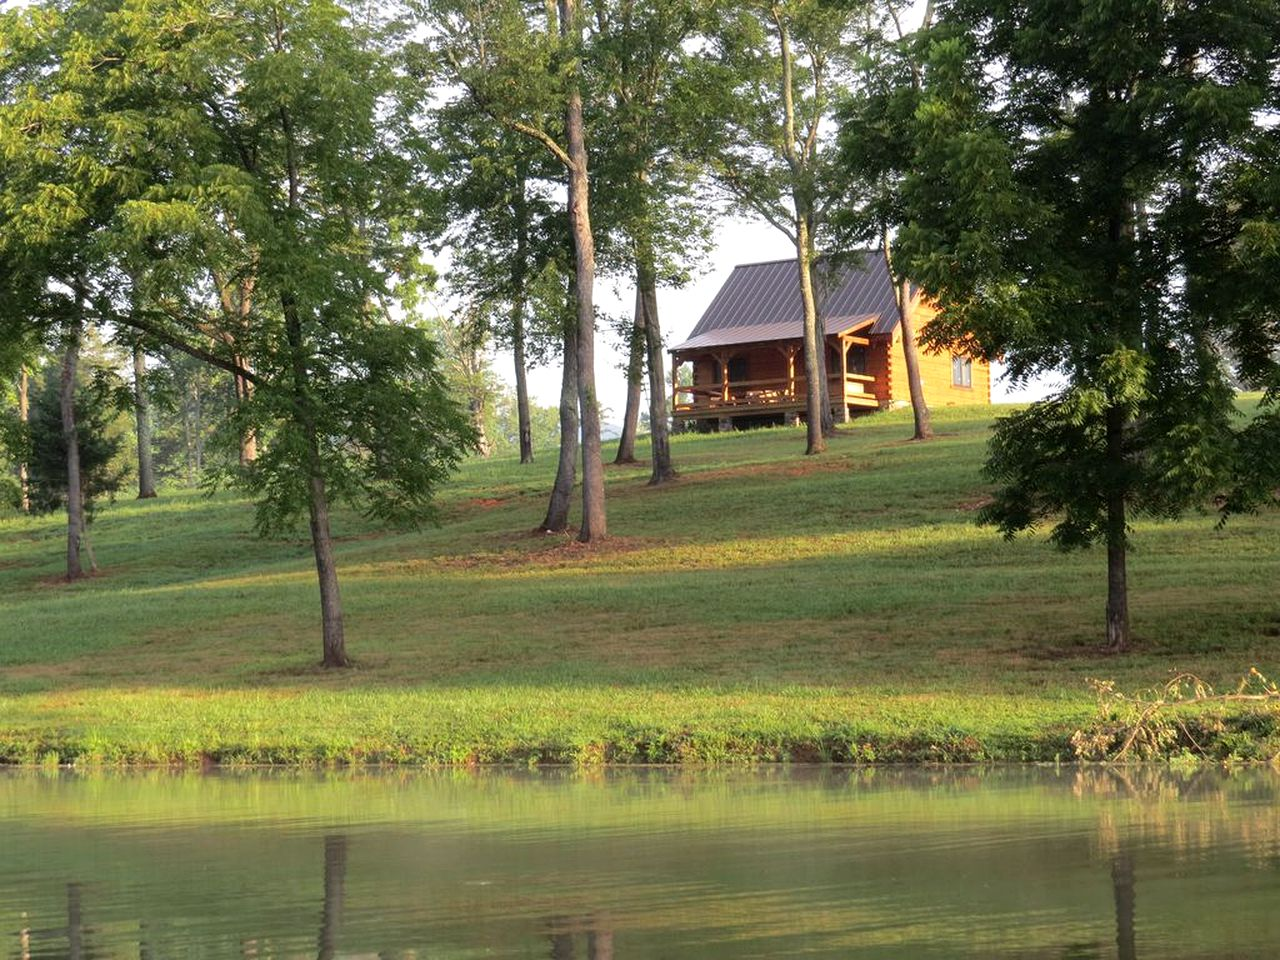 Log cabin sitting on top of hill with water bank and green forested area in front near Woods Mill in Virginia